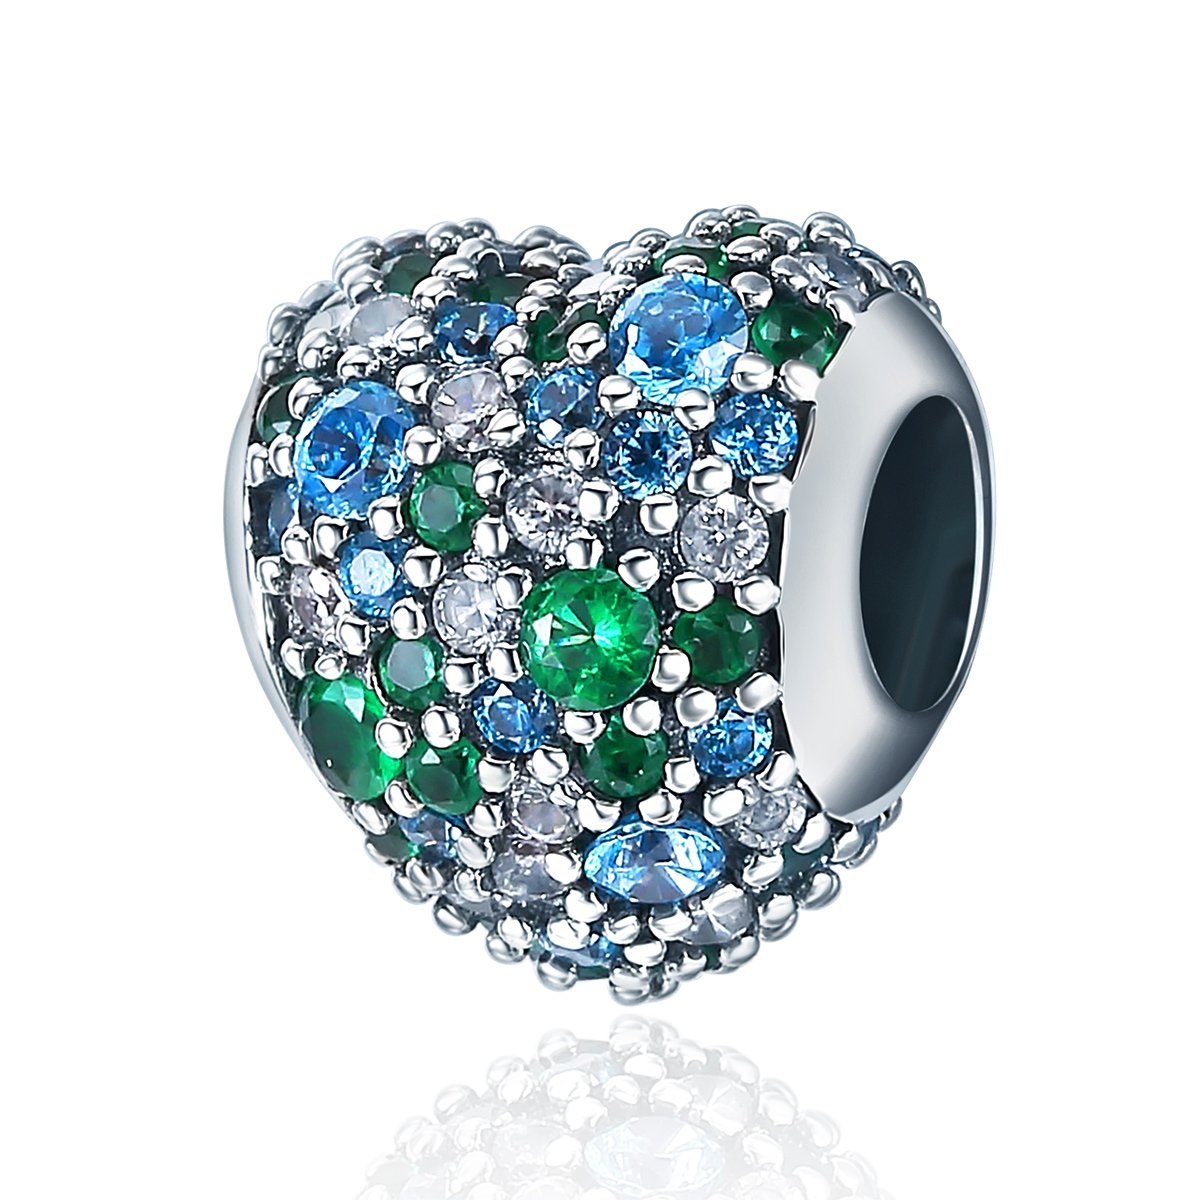 Soulove Green Colorful Heart Pave CZ 925 Sterling Silver Bead For Snake Chain Charm Bracelet